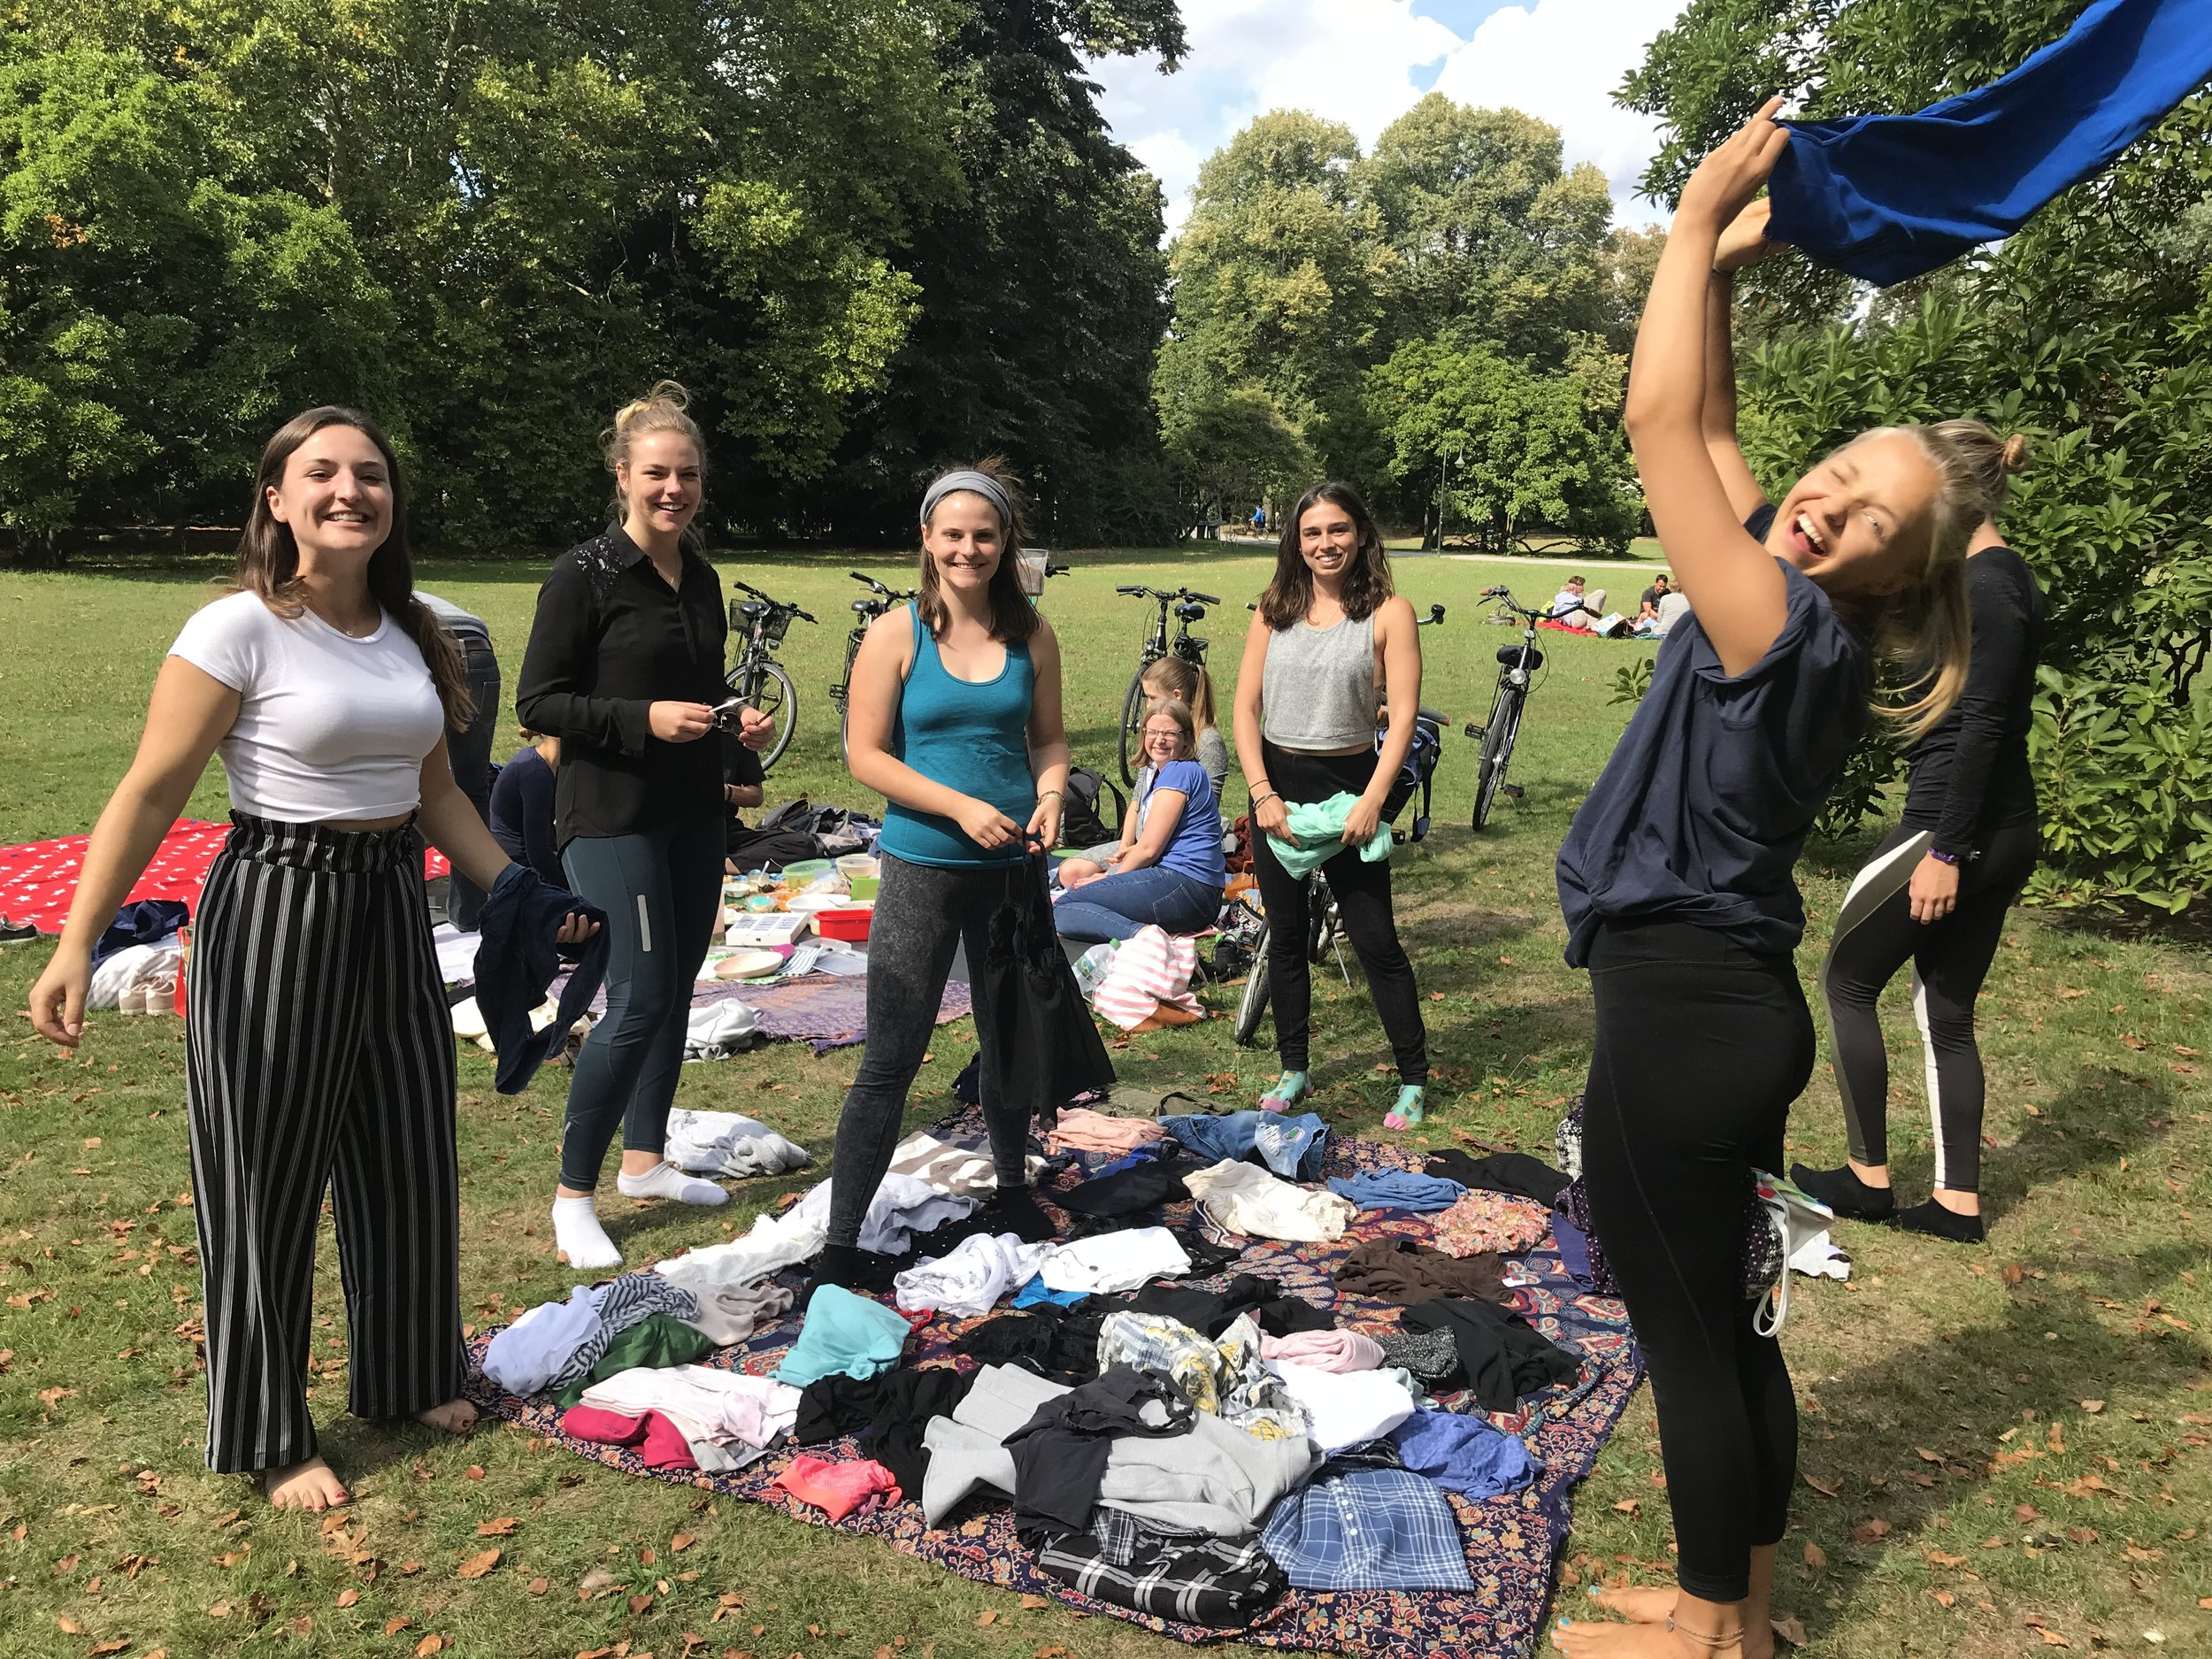 The girlies at our vegan picnic/clothes swap where I found a few great pieces!